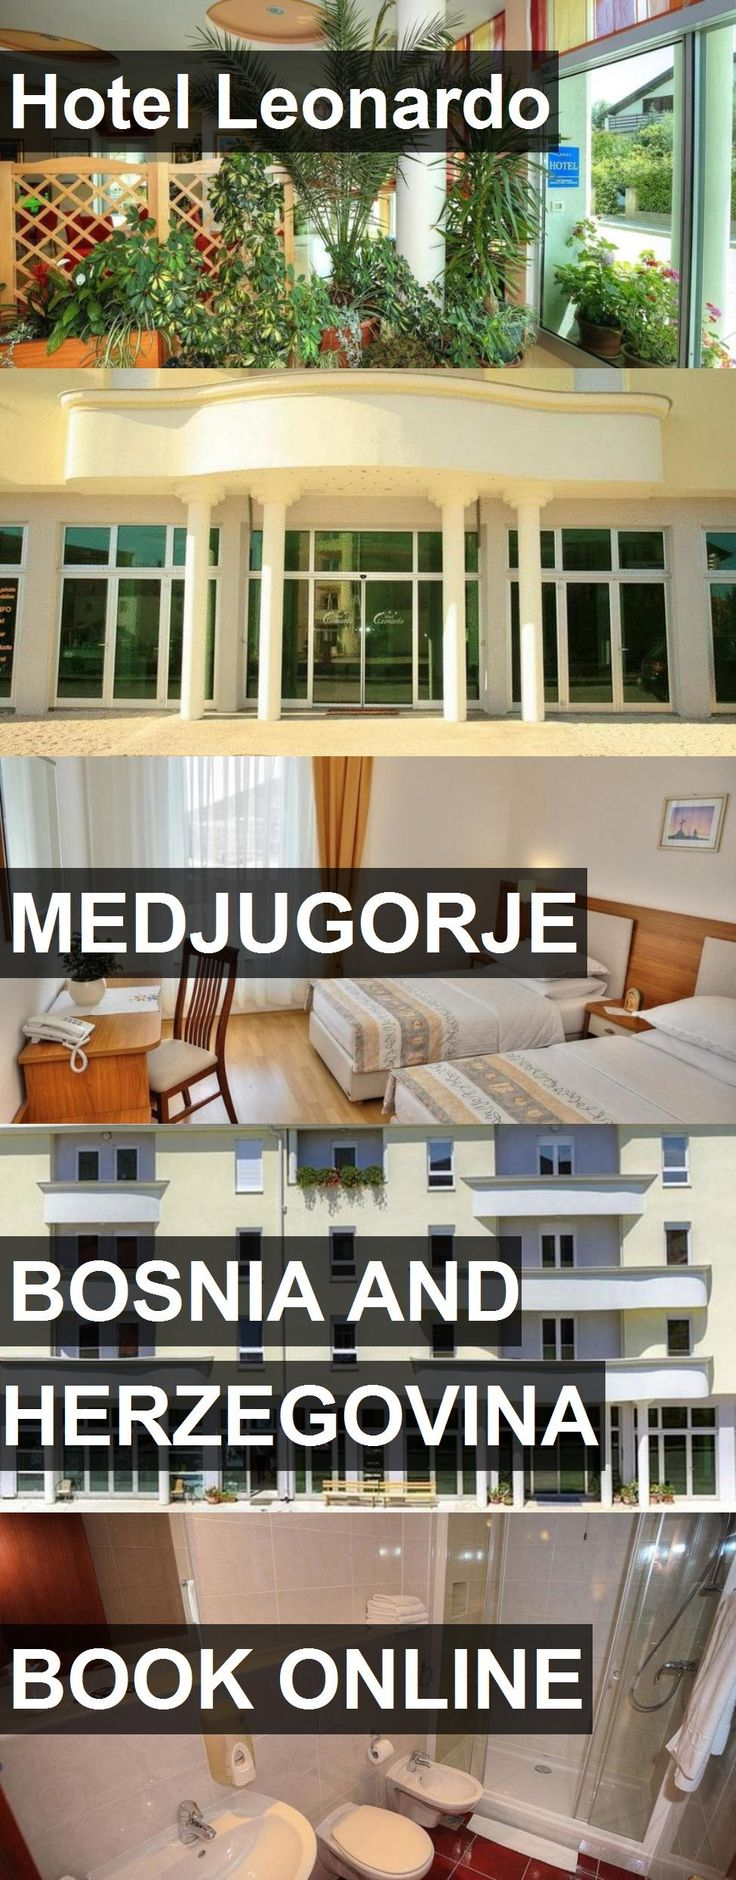 Hotel Hotel Leonardo in Medjugorje, Bosnia And Herzegovina. For more information, photos, reviews and best prices please follow the link. #BosniaAndHerzegovina #Medjugorje #HotelLeonardo #hotel #travel #vacation